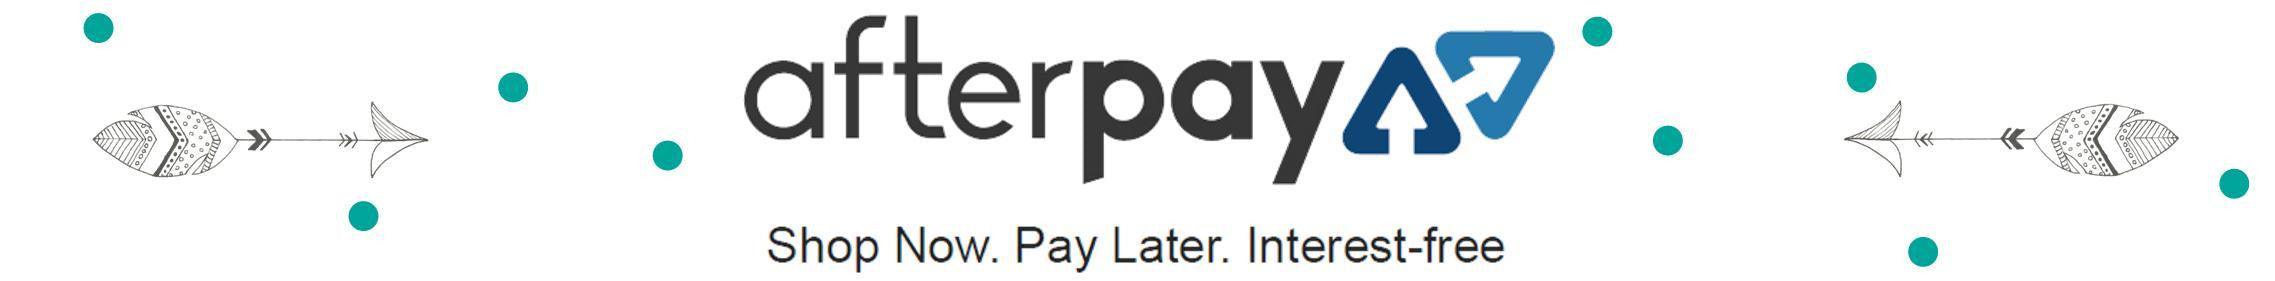 Afterpay Available Now - Shop Now. Pay Later. Interest Free.